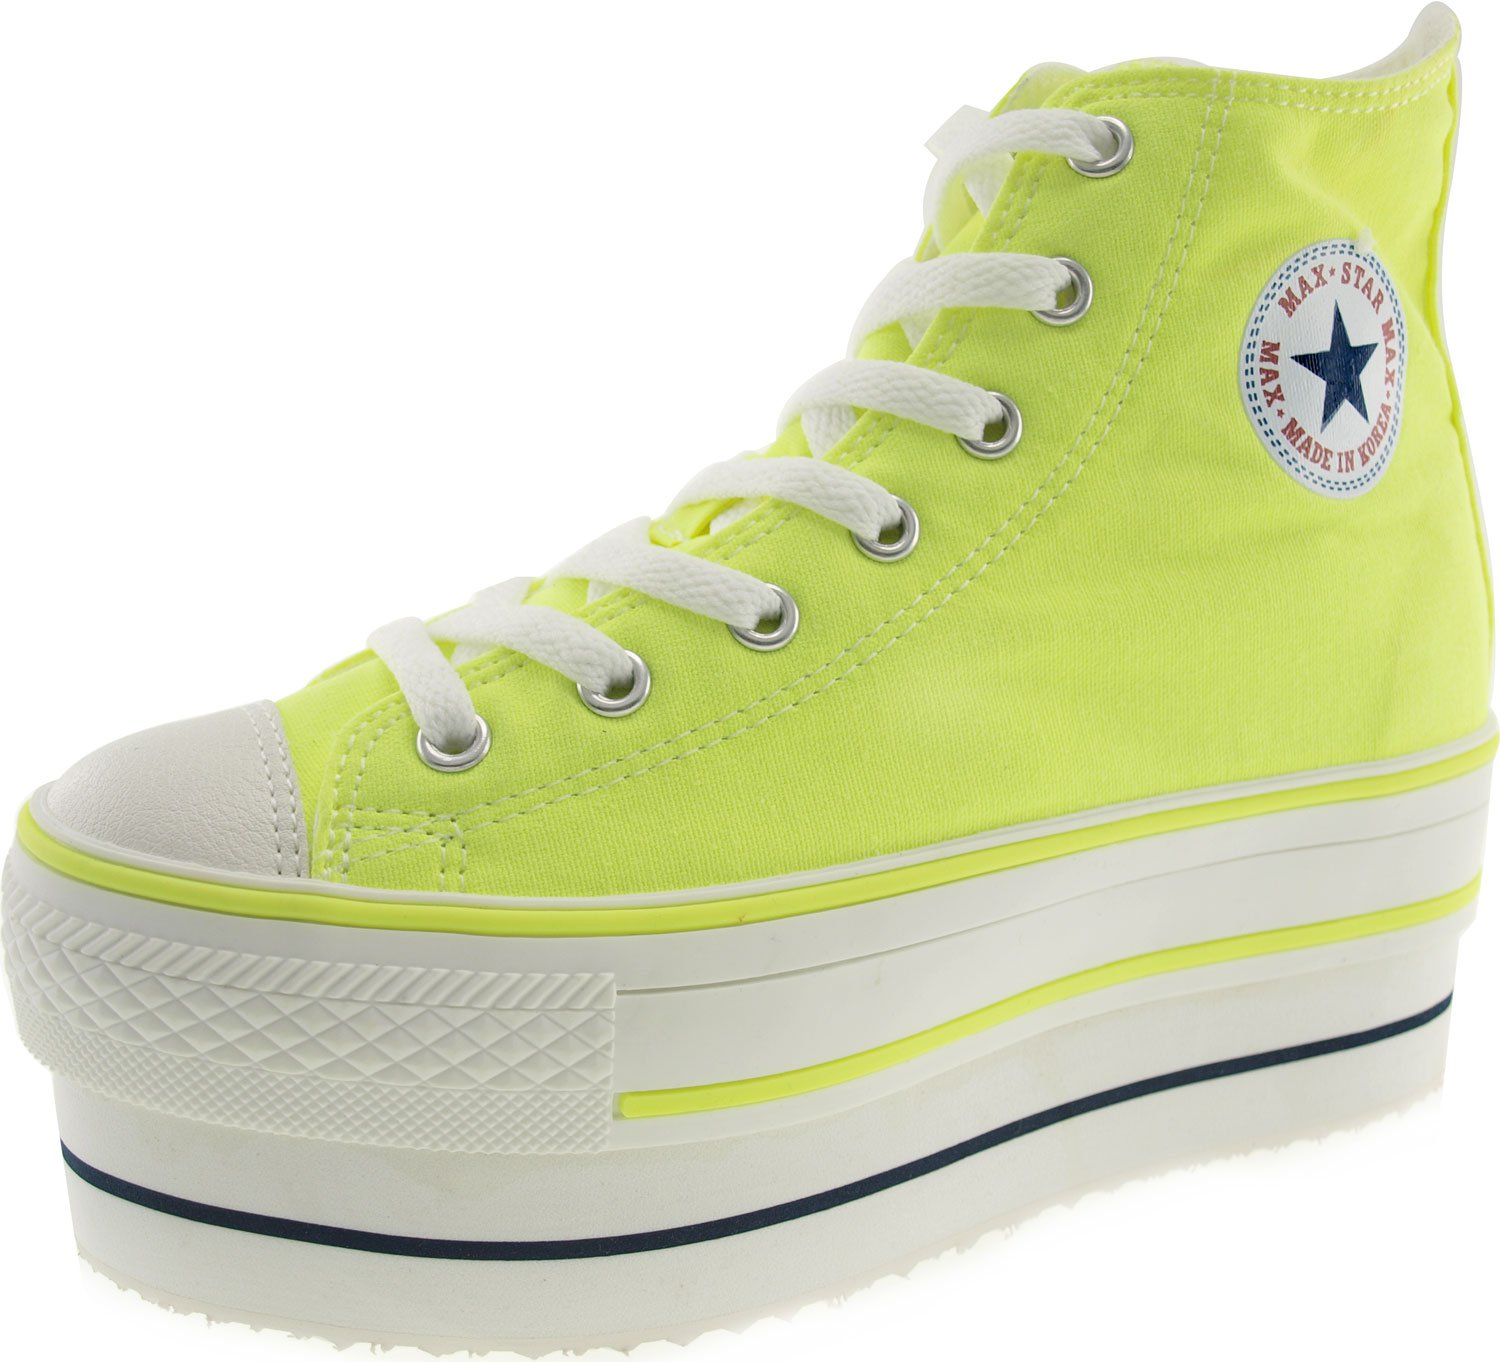 CN9 8 Holes Double Platform Denim Studed Taller Insole High Top Sneakers B00D12HW5A 9 B(M) US|Neon Green